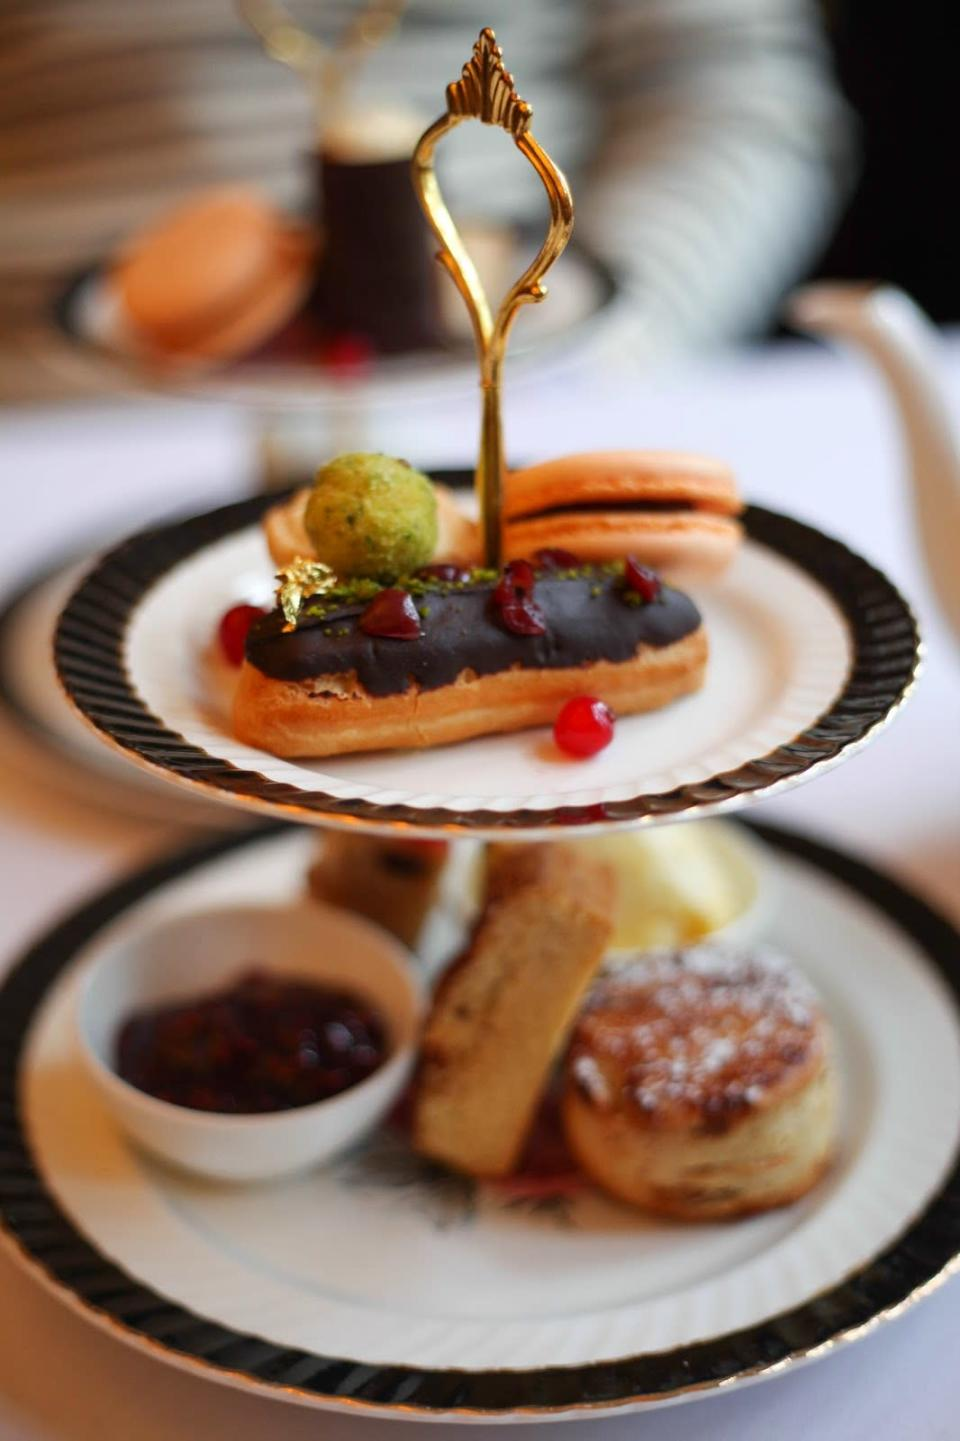 """<p>This is a refined take on tea, with delicate pastries and handmade morsels served on bone china, in a grand Victorian dining room. </p><p><b><a rel=""""nofollow noopener"""" href=""""http://parkhouserestaurant.co.uk/"""" target=""""_blank"""" data-ylk=""""slk:Parkhouserestaurant.co.uk"""" class=""""link rapid-noclick-resp"""">Parkhouserestaurant.co.uk</a></b></p>"""